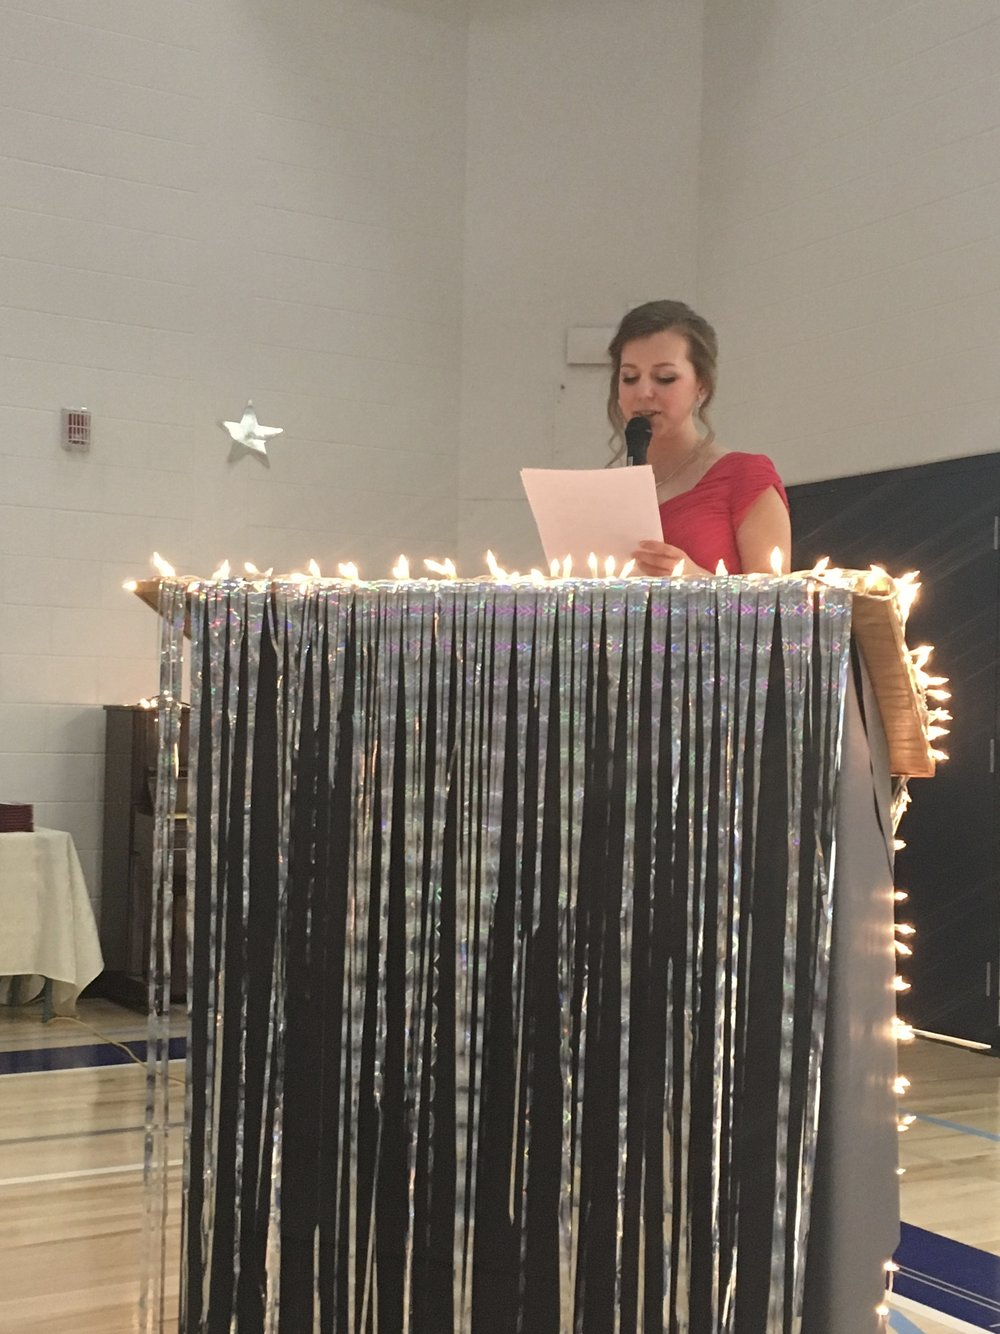 Marissa Hogg delivers her speech at the Stirling School graduation ceremony on May 25, 2018.